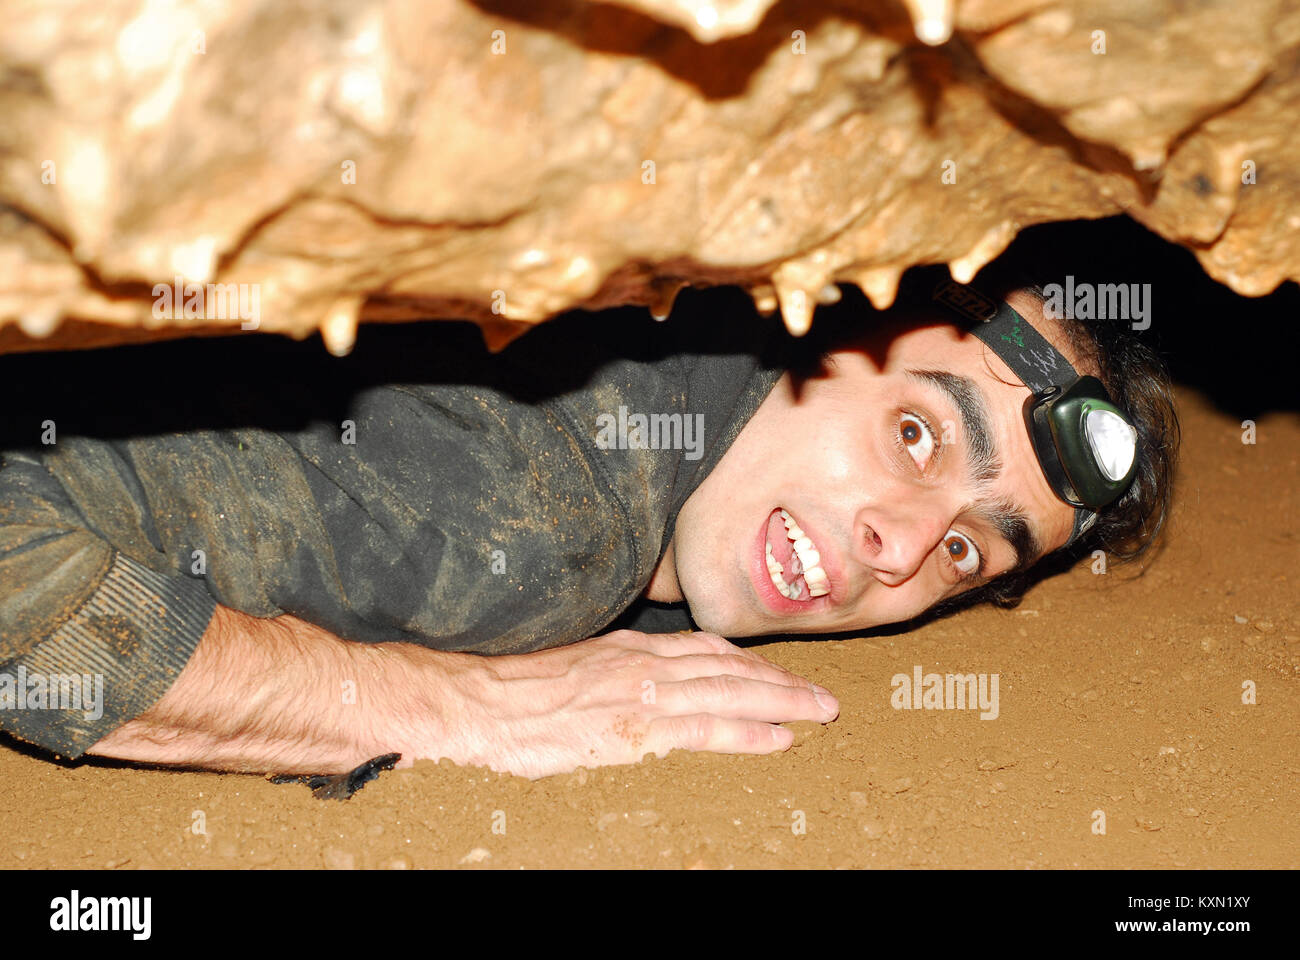 cave explorer in a tight spot - Stock Image